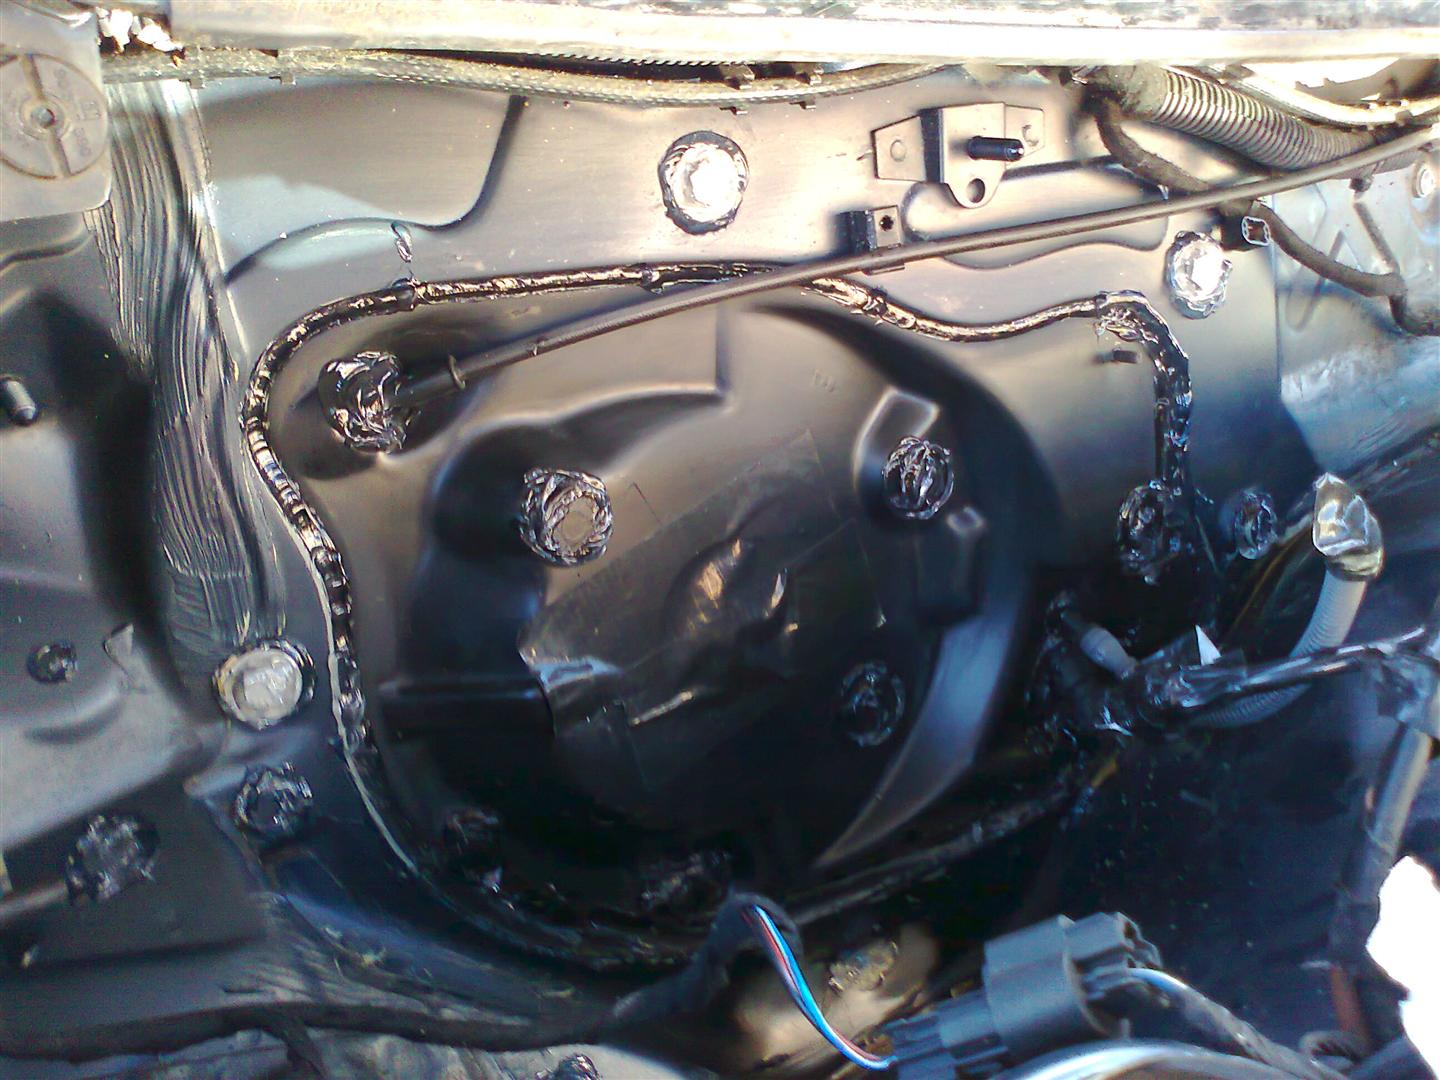 medium resolution of cars code and other fun stuff corsa c water leak fixes drivers carpet